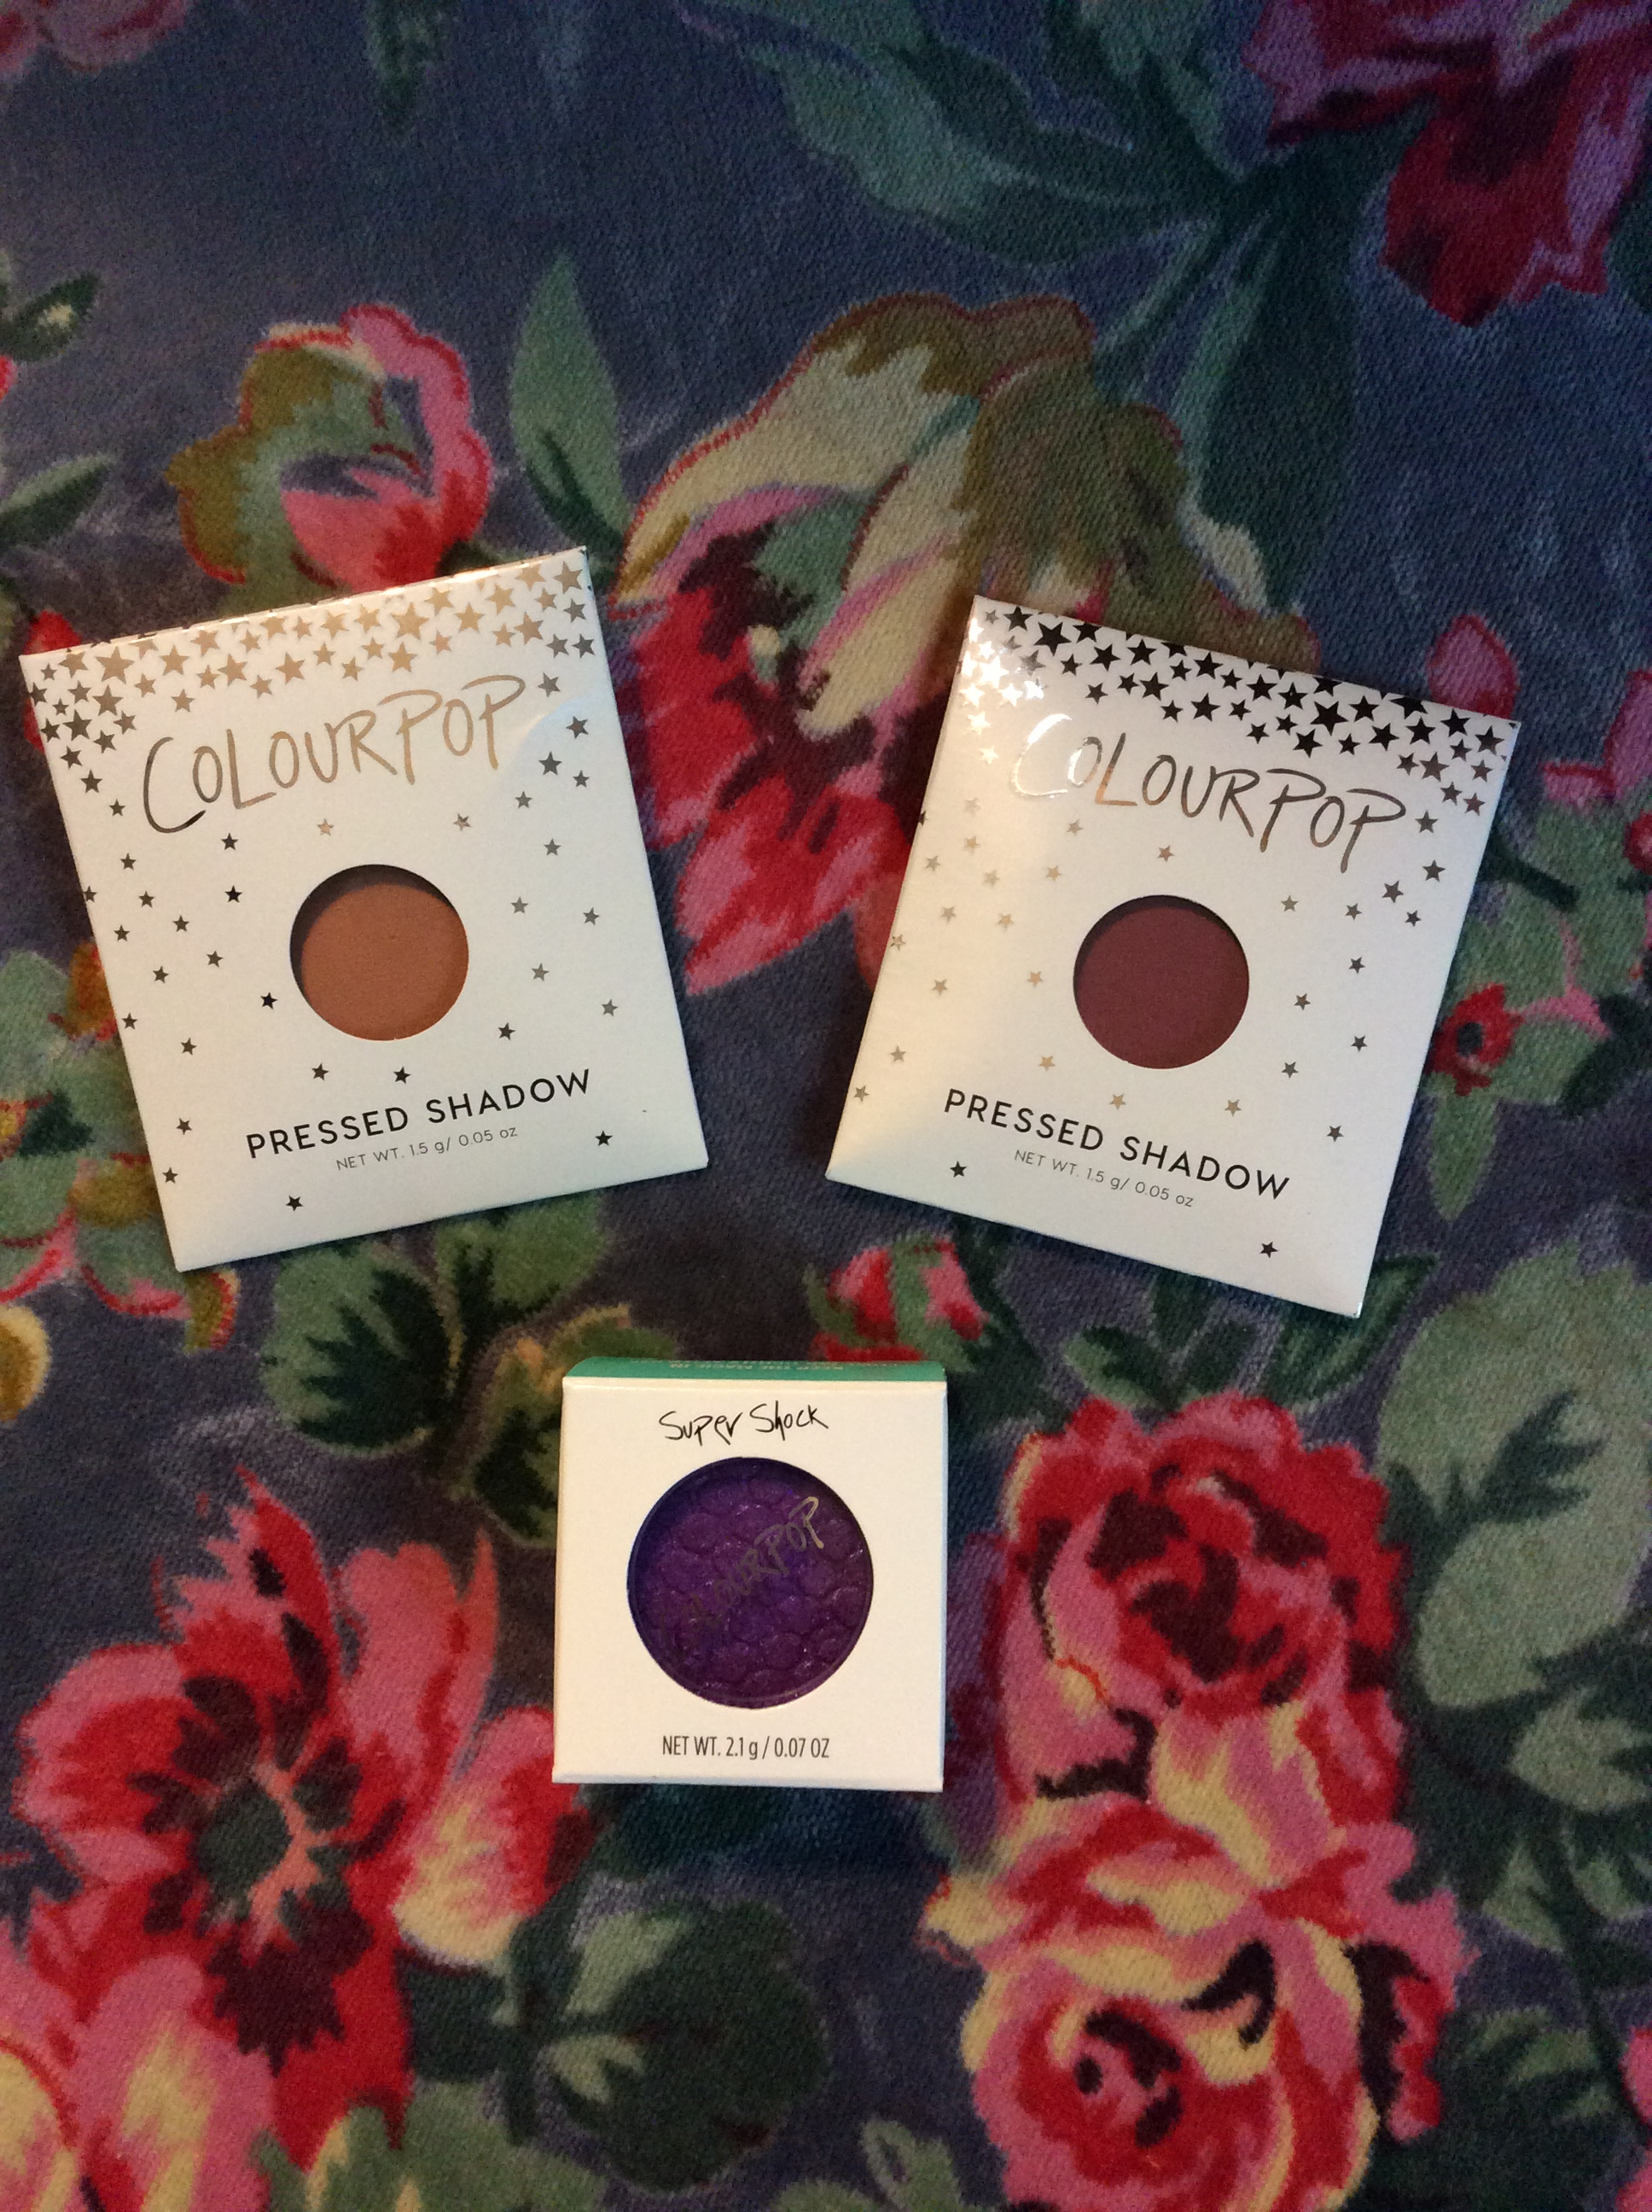 Colourpop's Pressed Shadows +Wrong Super Shock